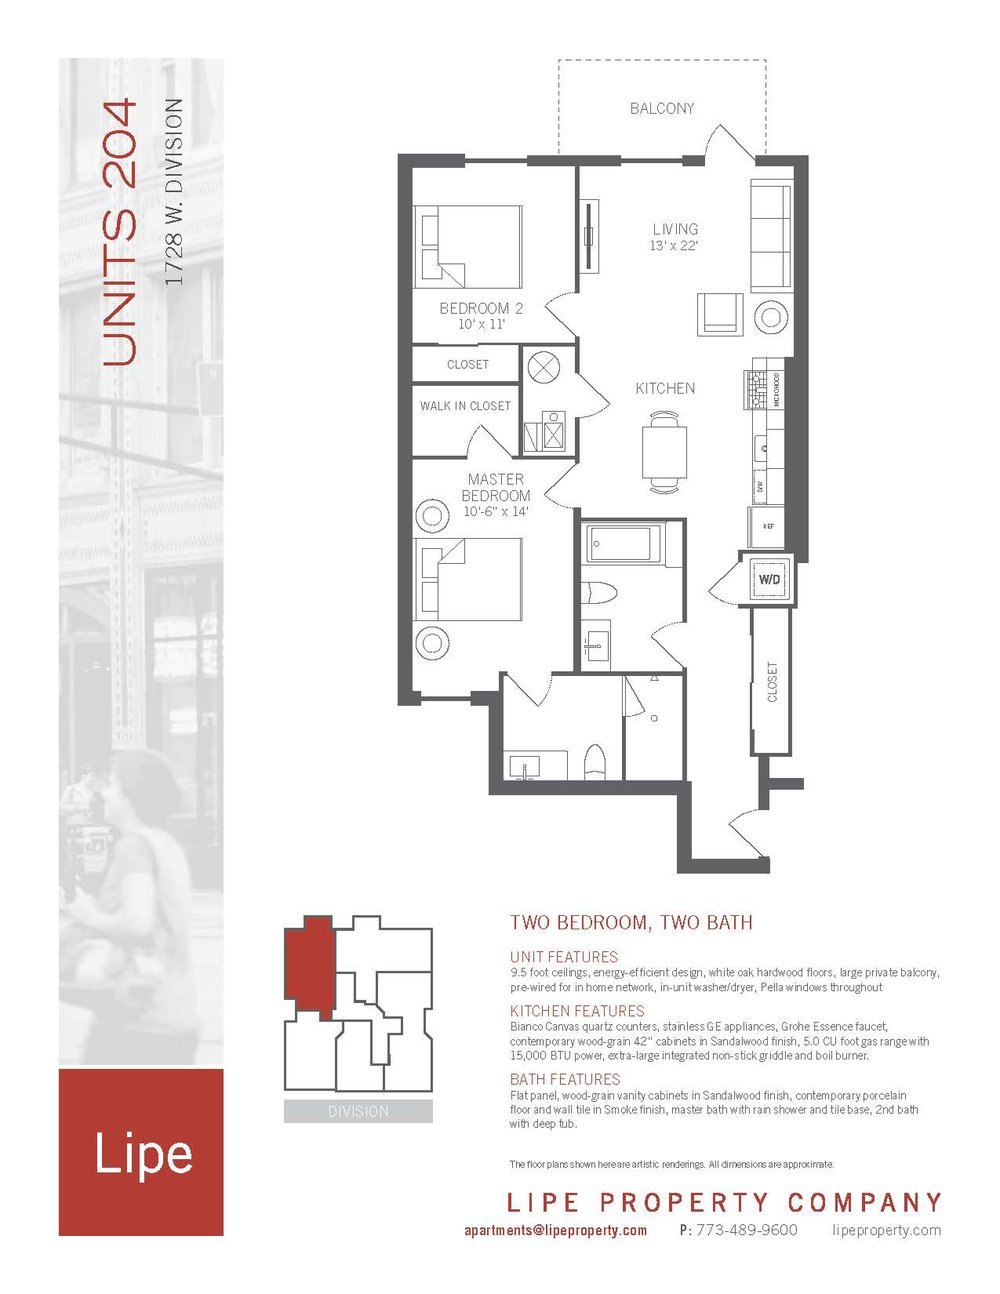 1728-West-Division-204-Floorplan-Chicago-apartment-for-rent.jpg